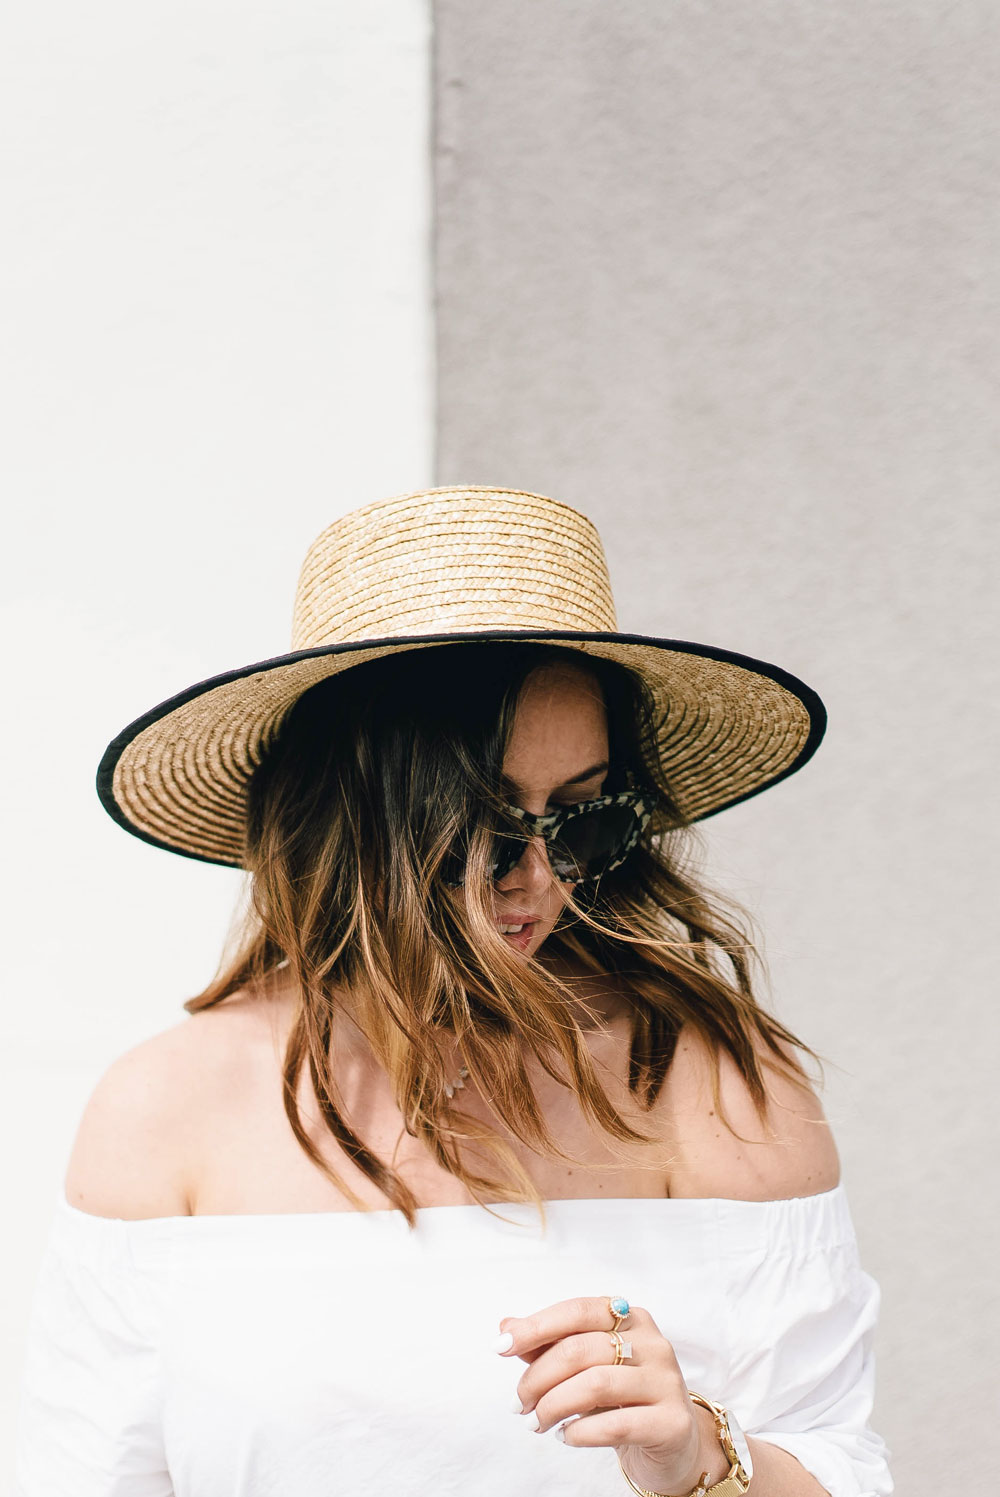 How to style converse sneakers, how to wear converse, how to wear sneakers, how to wear a boat hat, summer transition outfit ideas in bailey nelson sunglasses, bailey nelson tortoise sunglasses, aritzia off the shoulder top by To Vogue or Bust